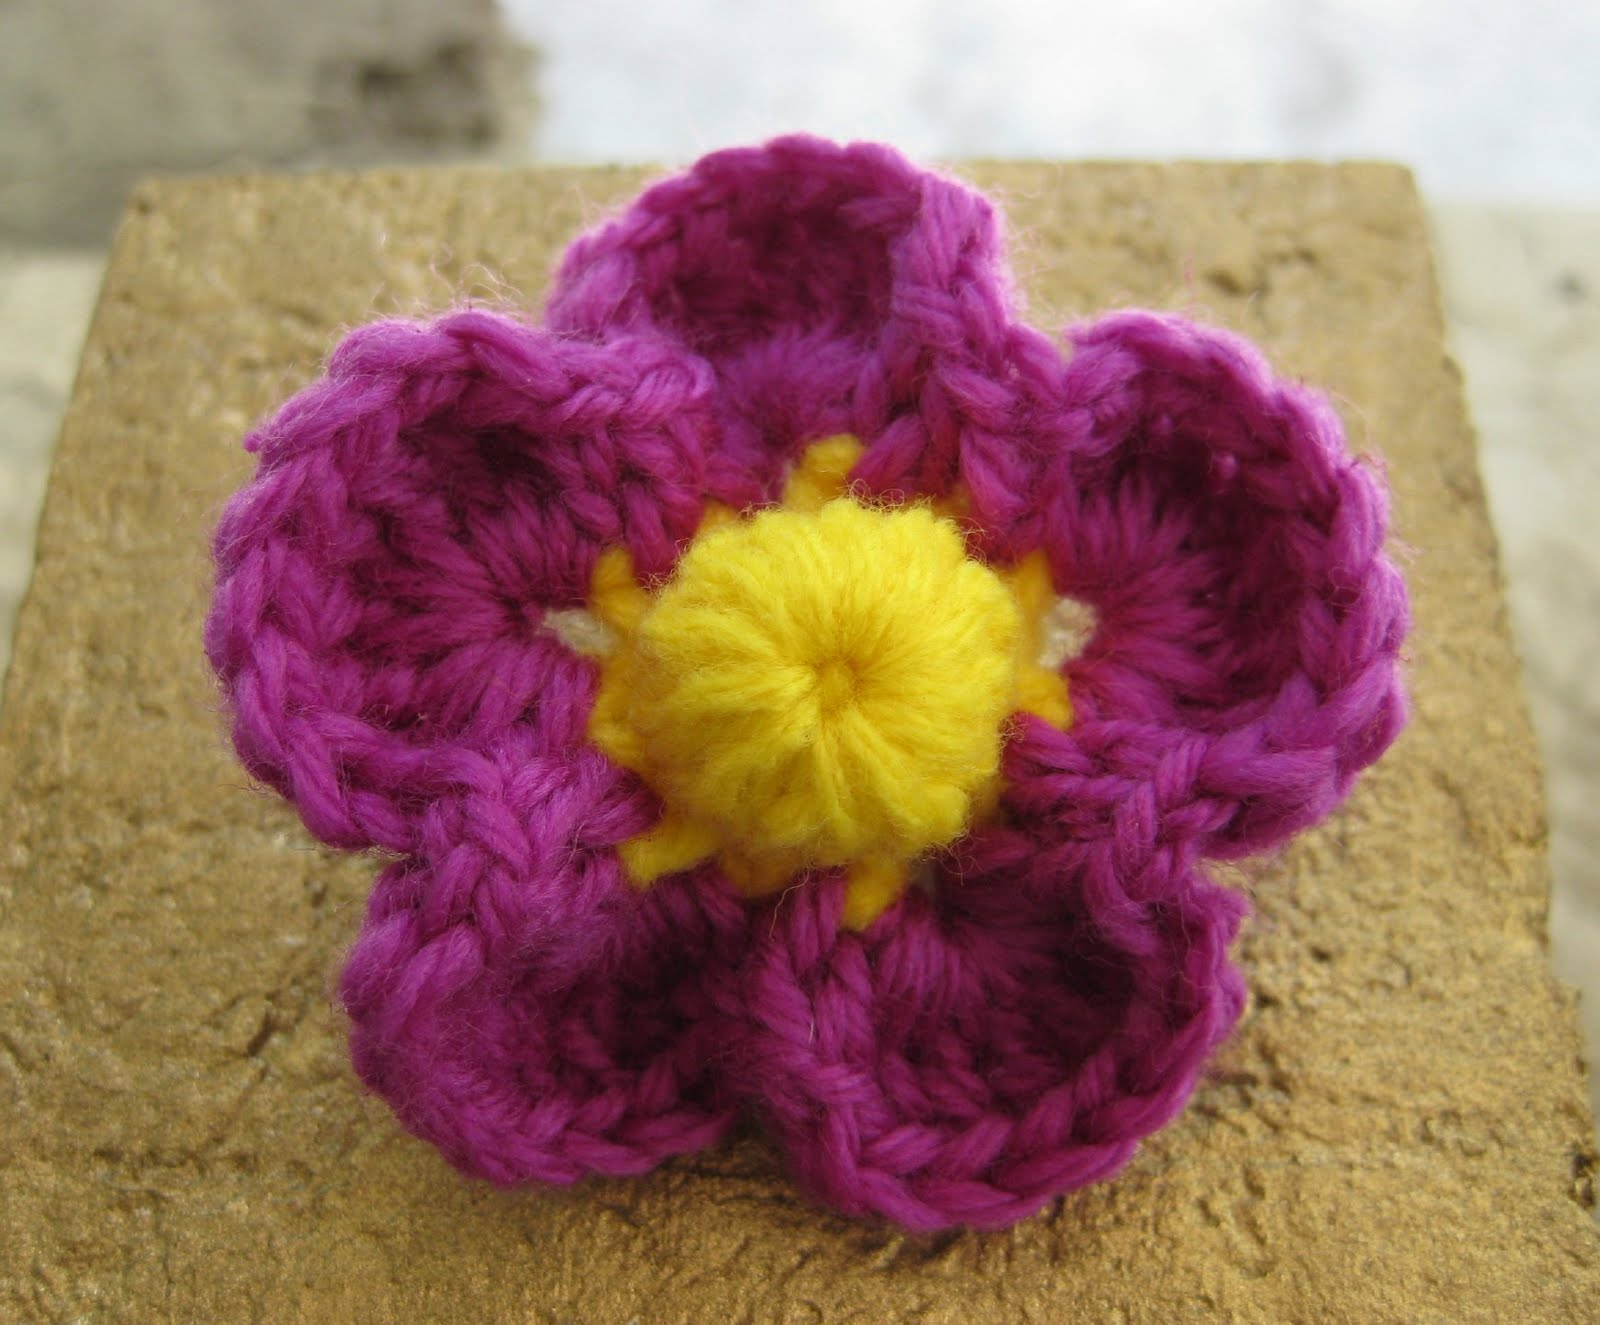 CROCHET CROCHETED FLOWER - Crochet ? Learn How to Crochet